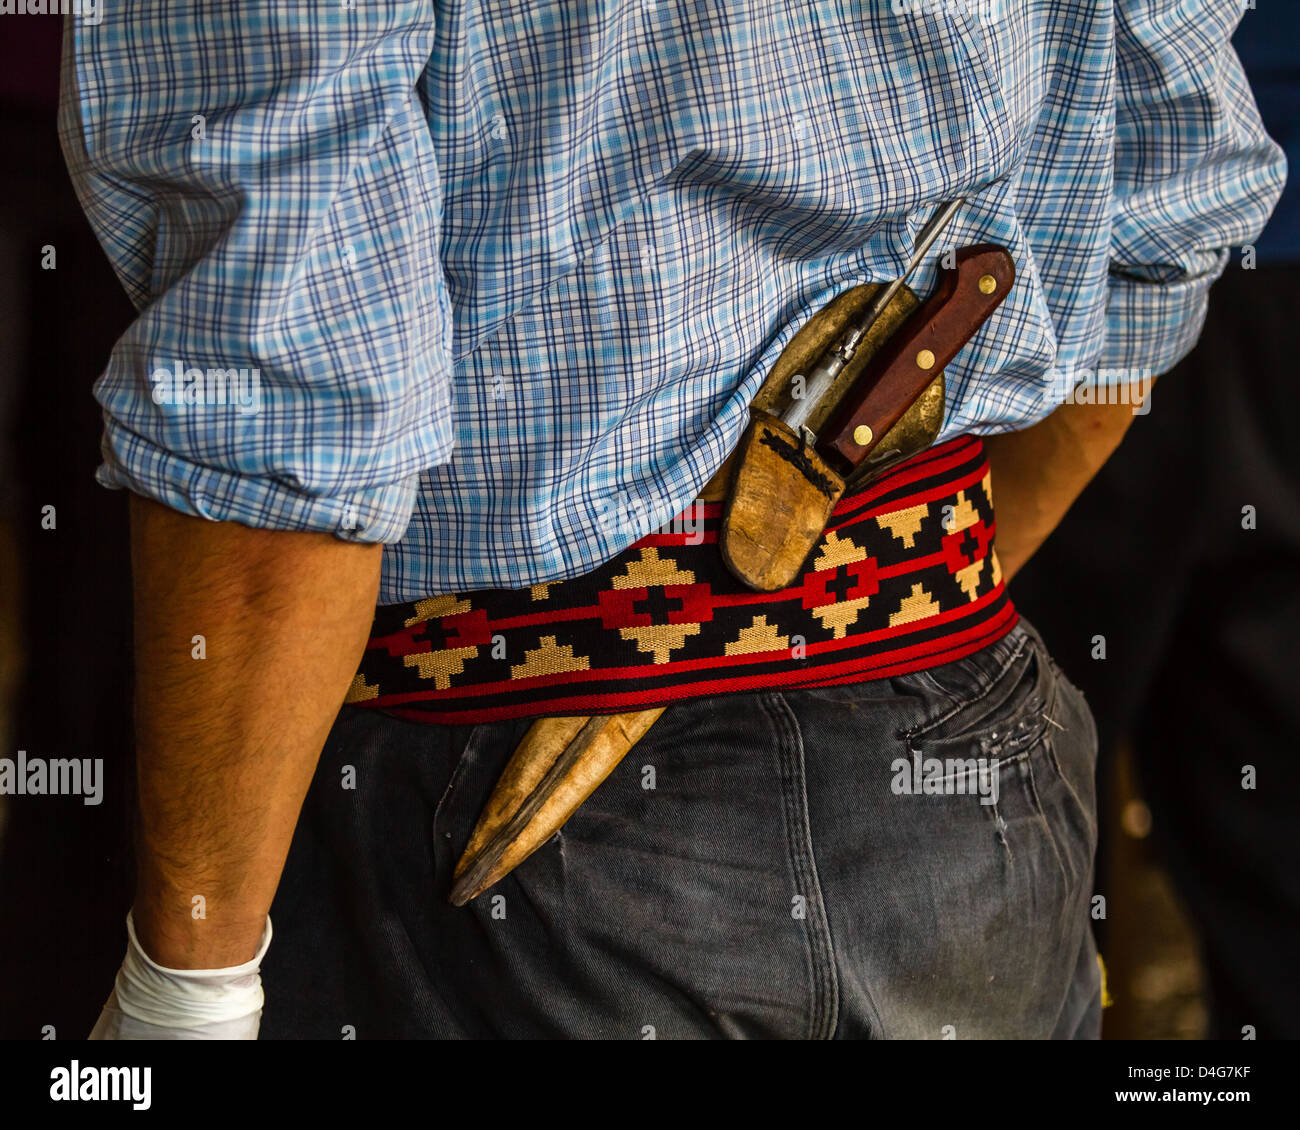 Detail of the belt of a Gaucho being worn on a person with a knife slipped in the back, Patagonia - Stock Image